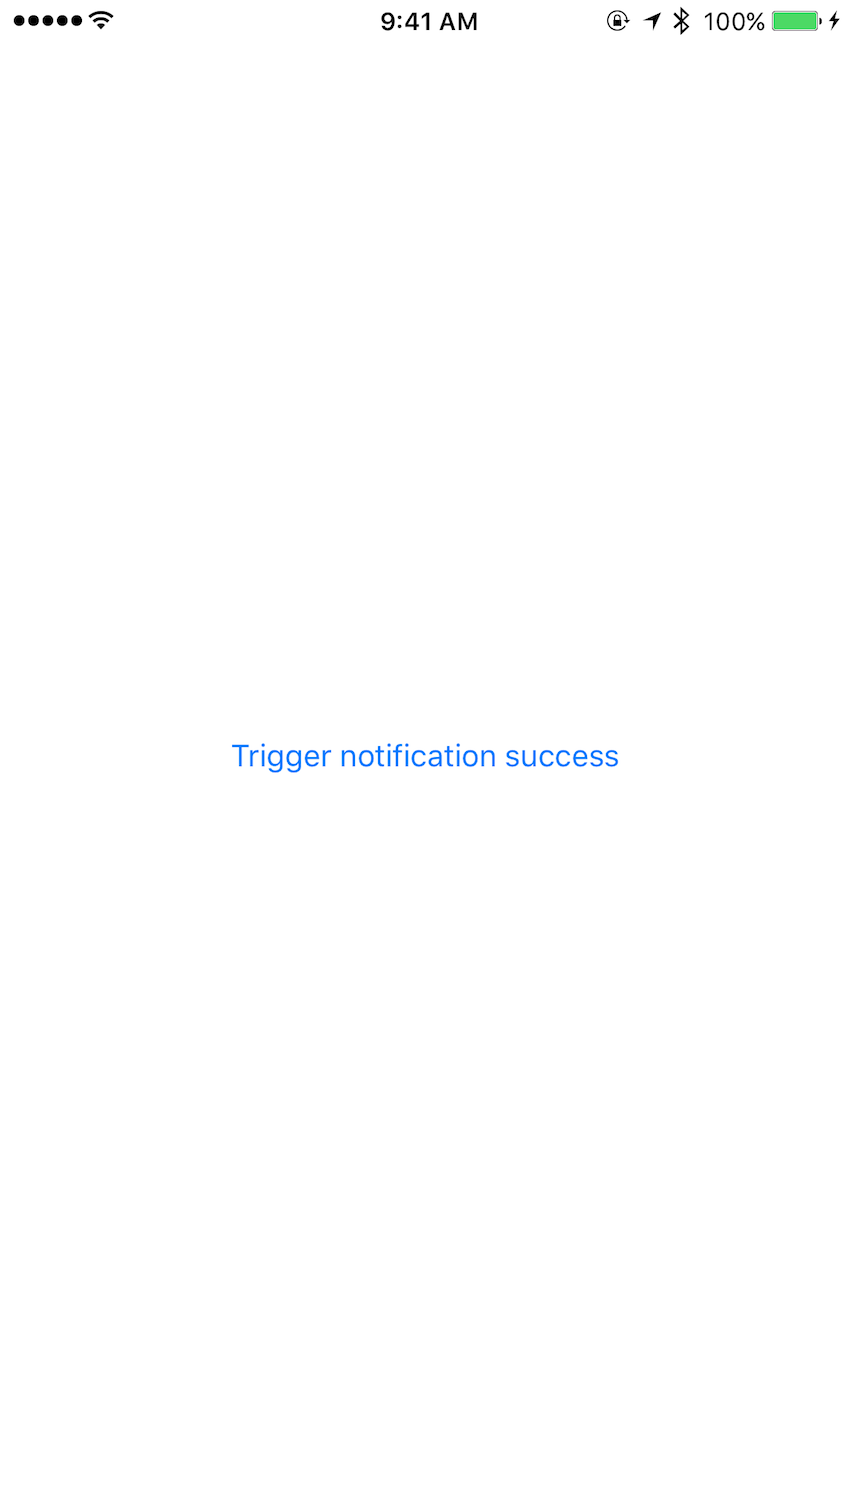 Trigger notification success message